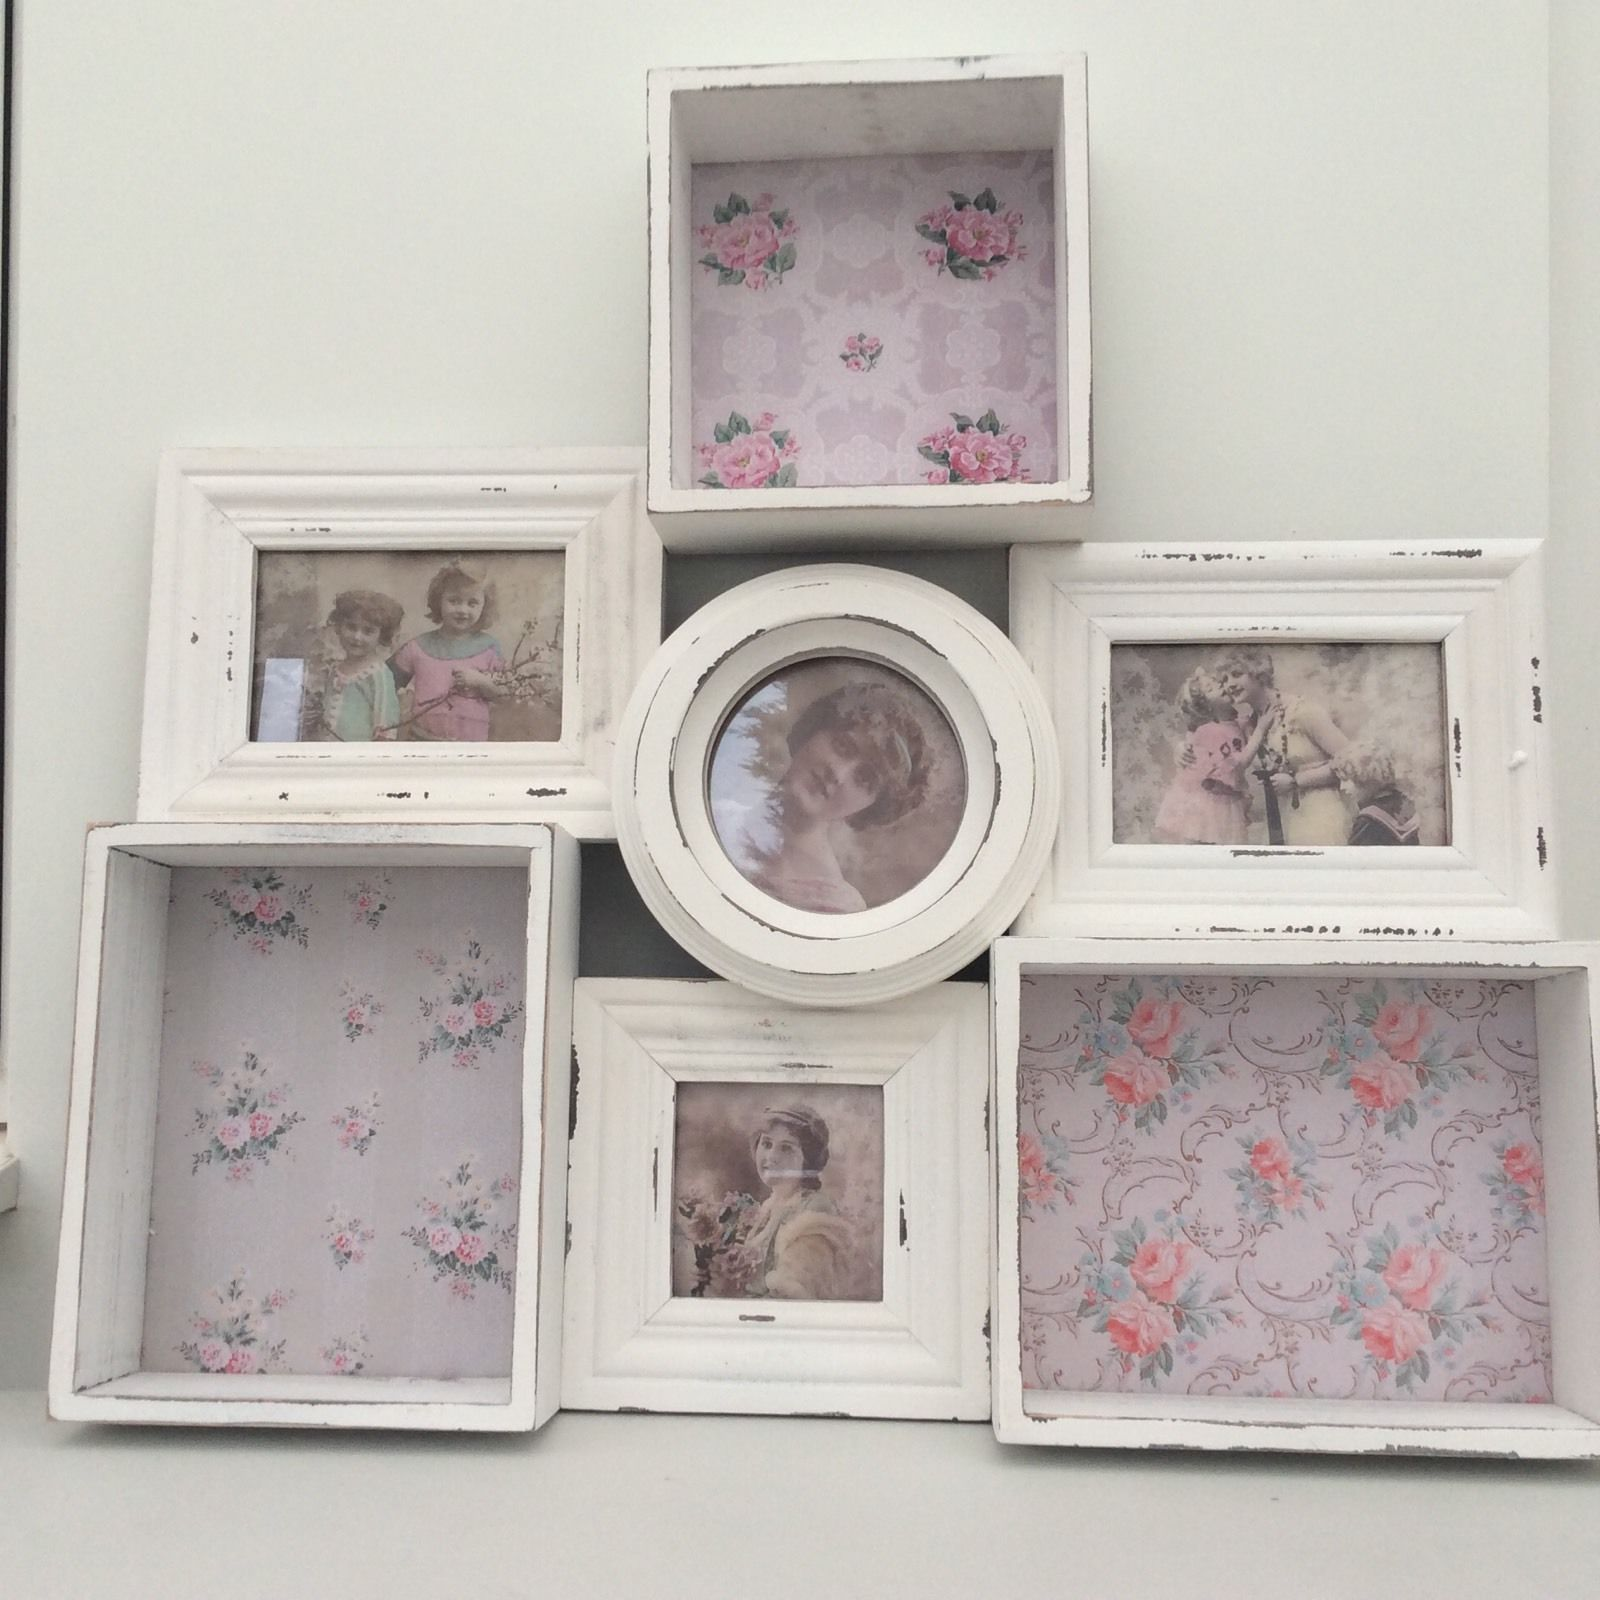 Shelf bookcases memorial wall displays antique white wall display - French Vintage Shabby Chic White Floral Multi Photo Frame Wall Shelf Display Ebay